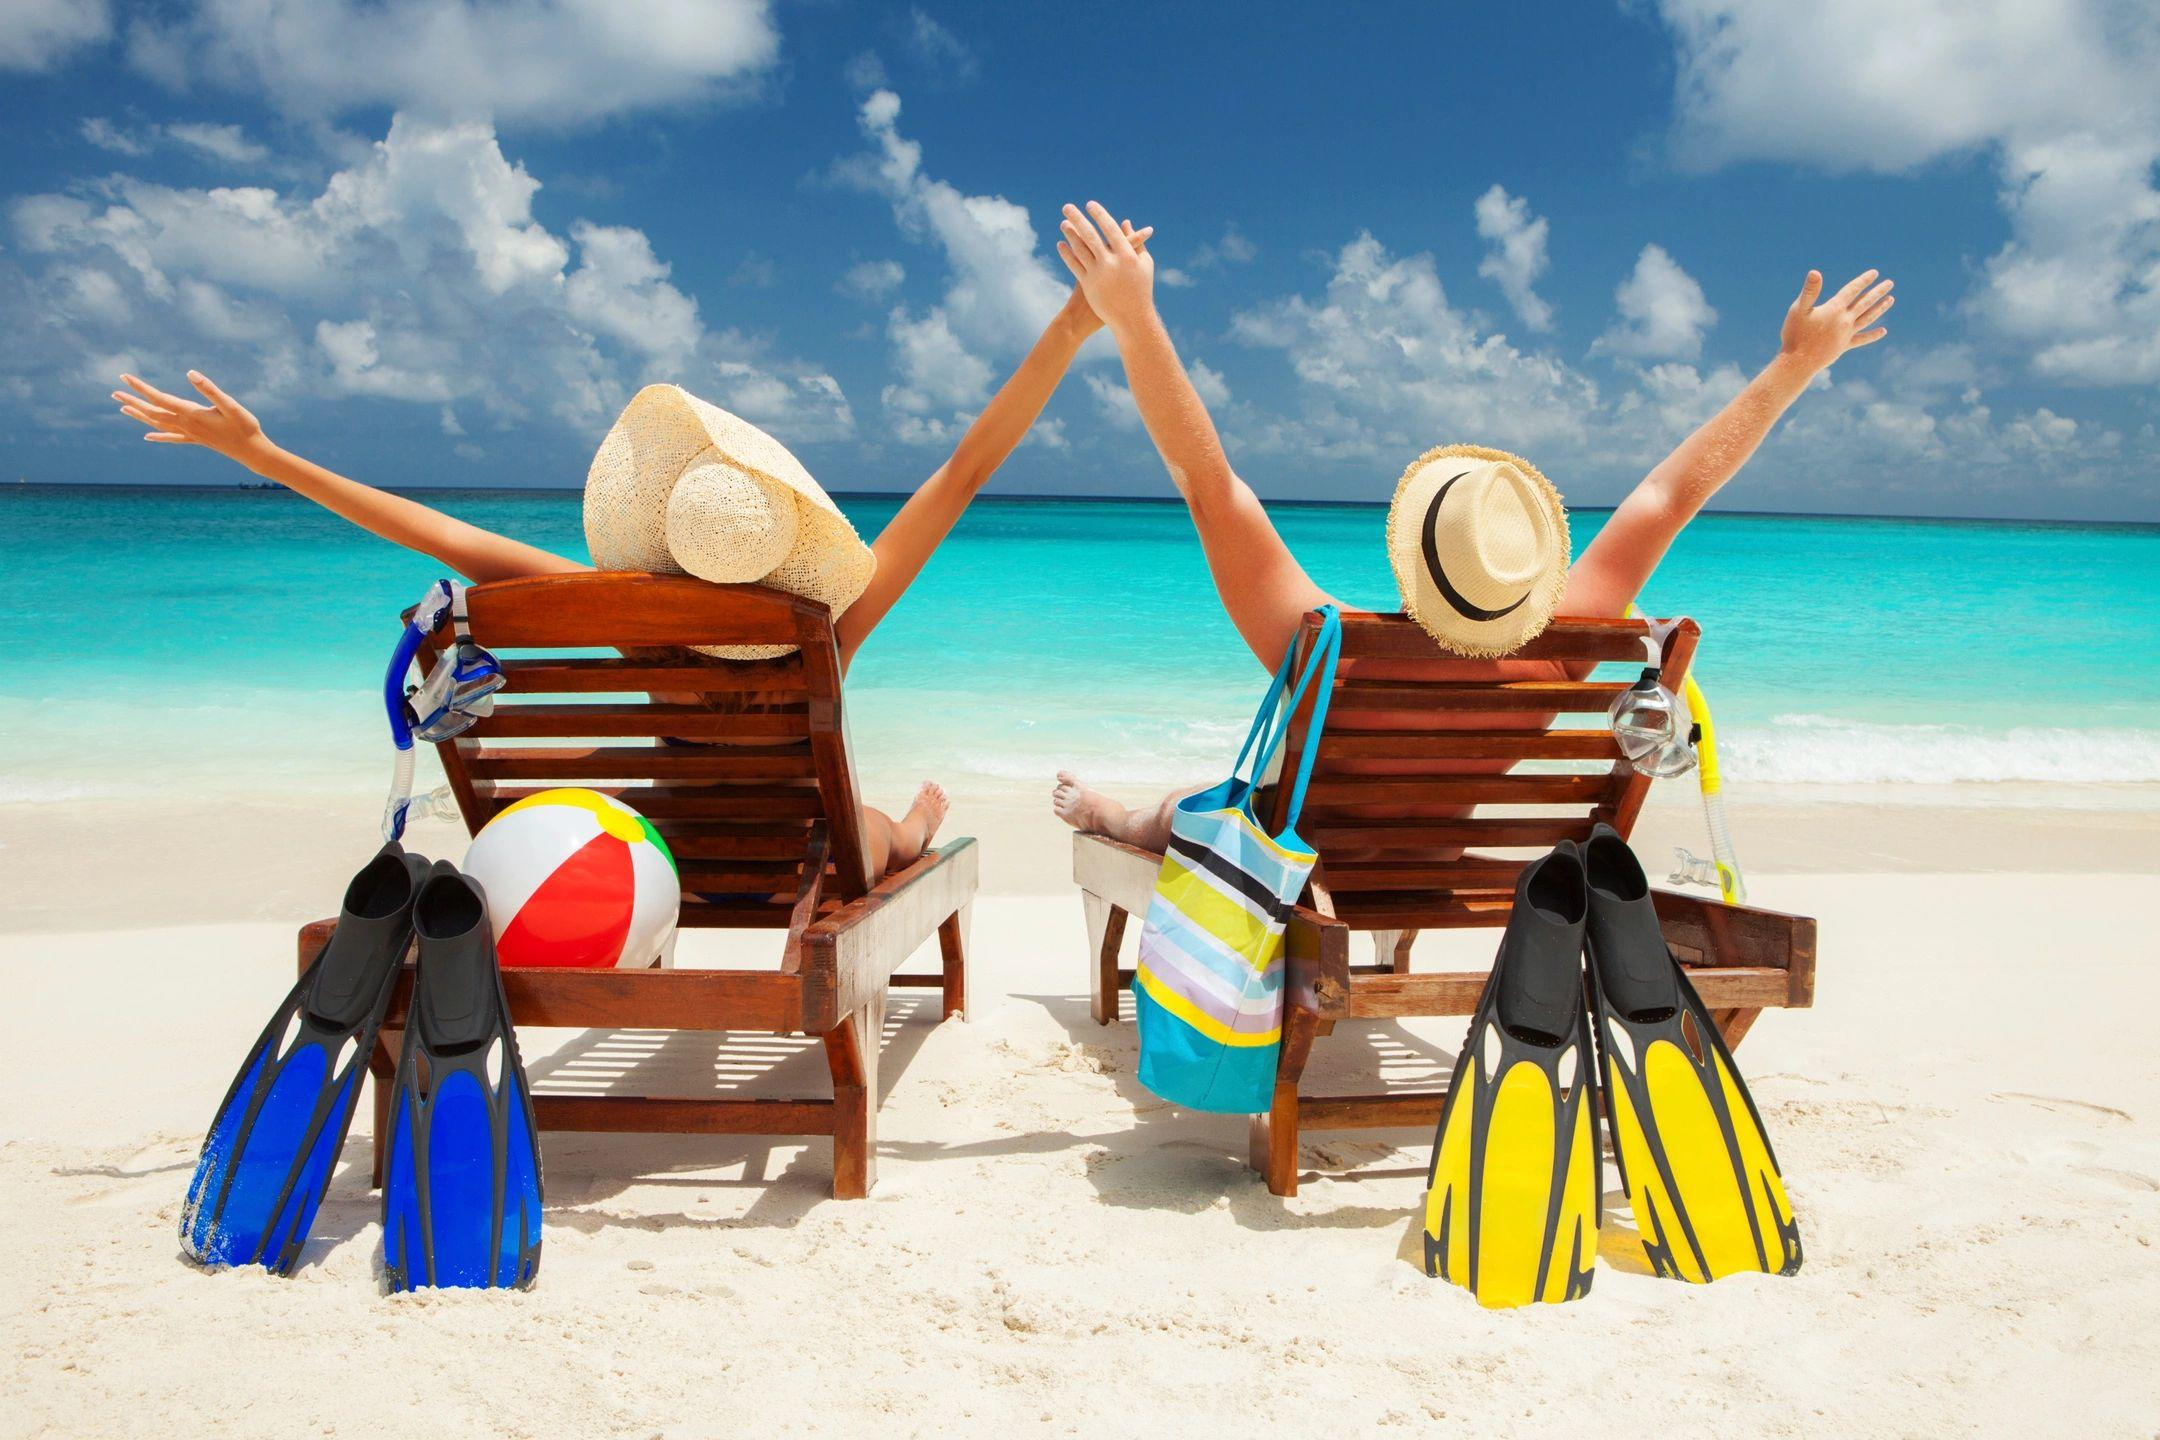 VACATION RENTAL WEBSITE CONTENT AND DESIGN